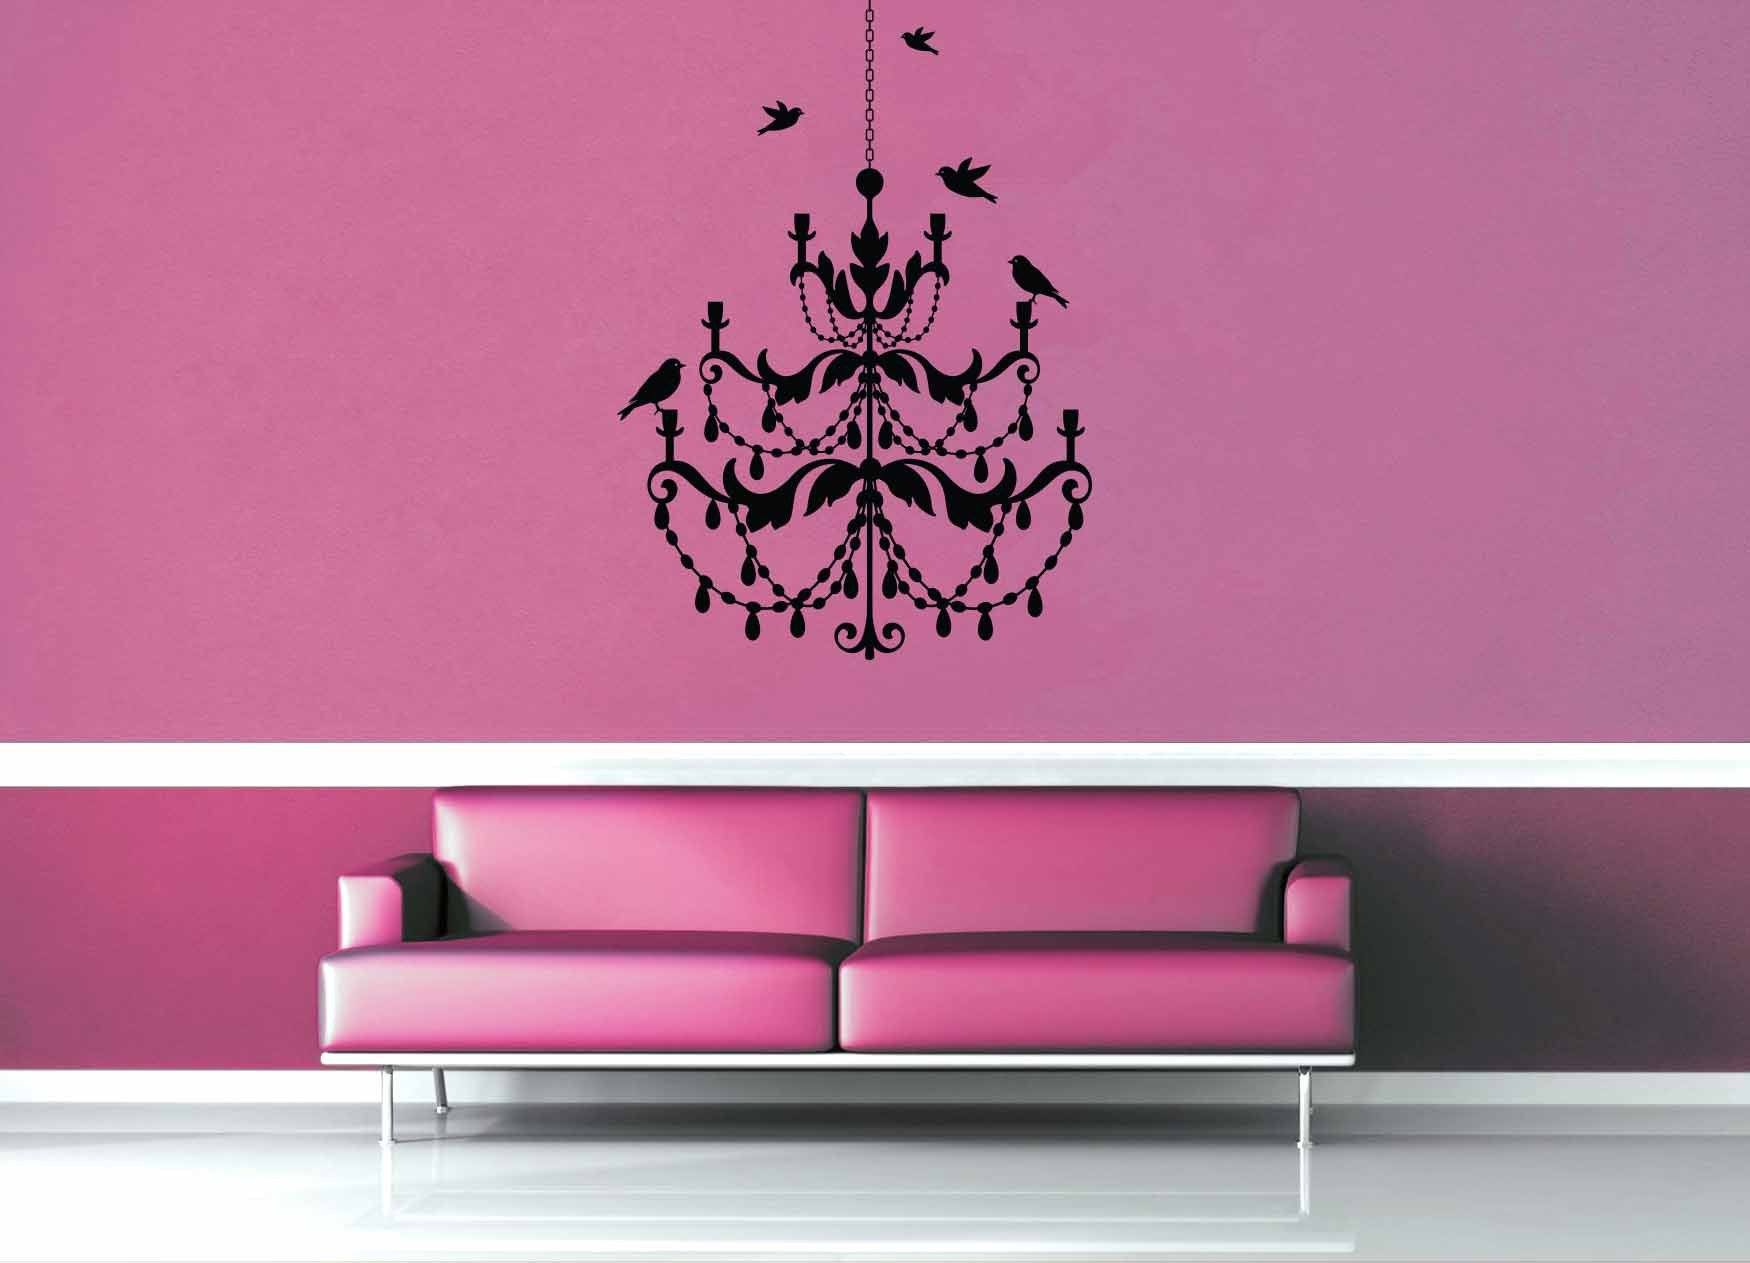 Bird Chandelier - Wall Decal